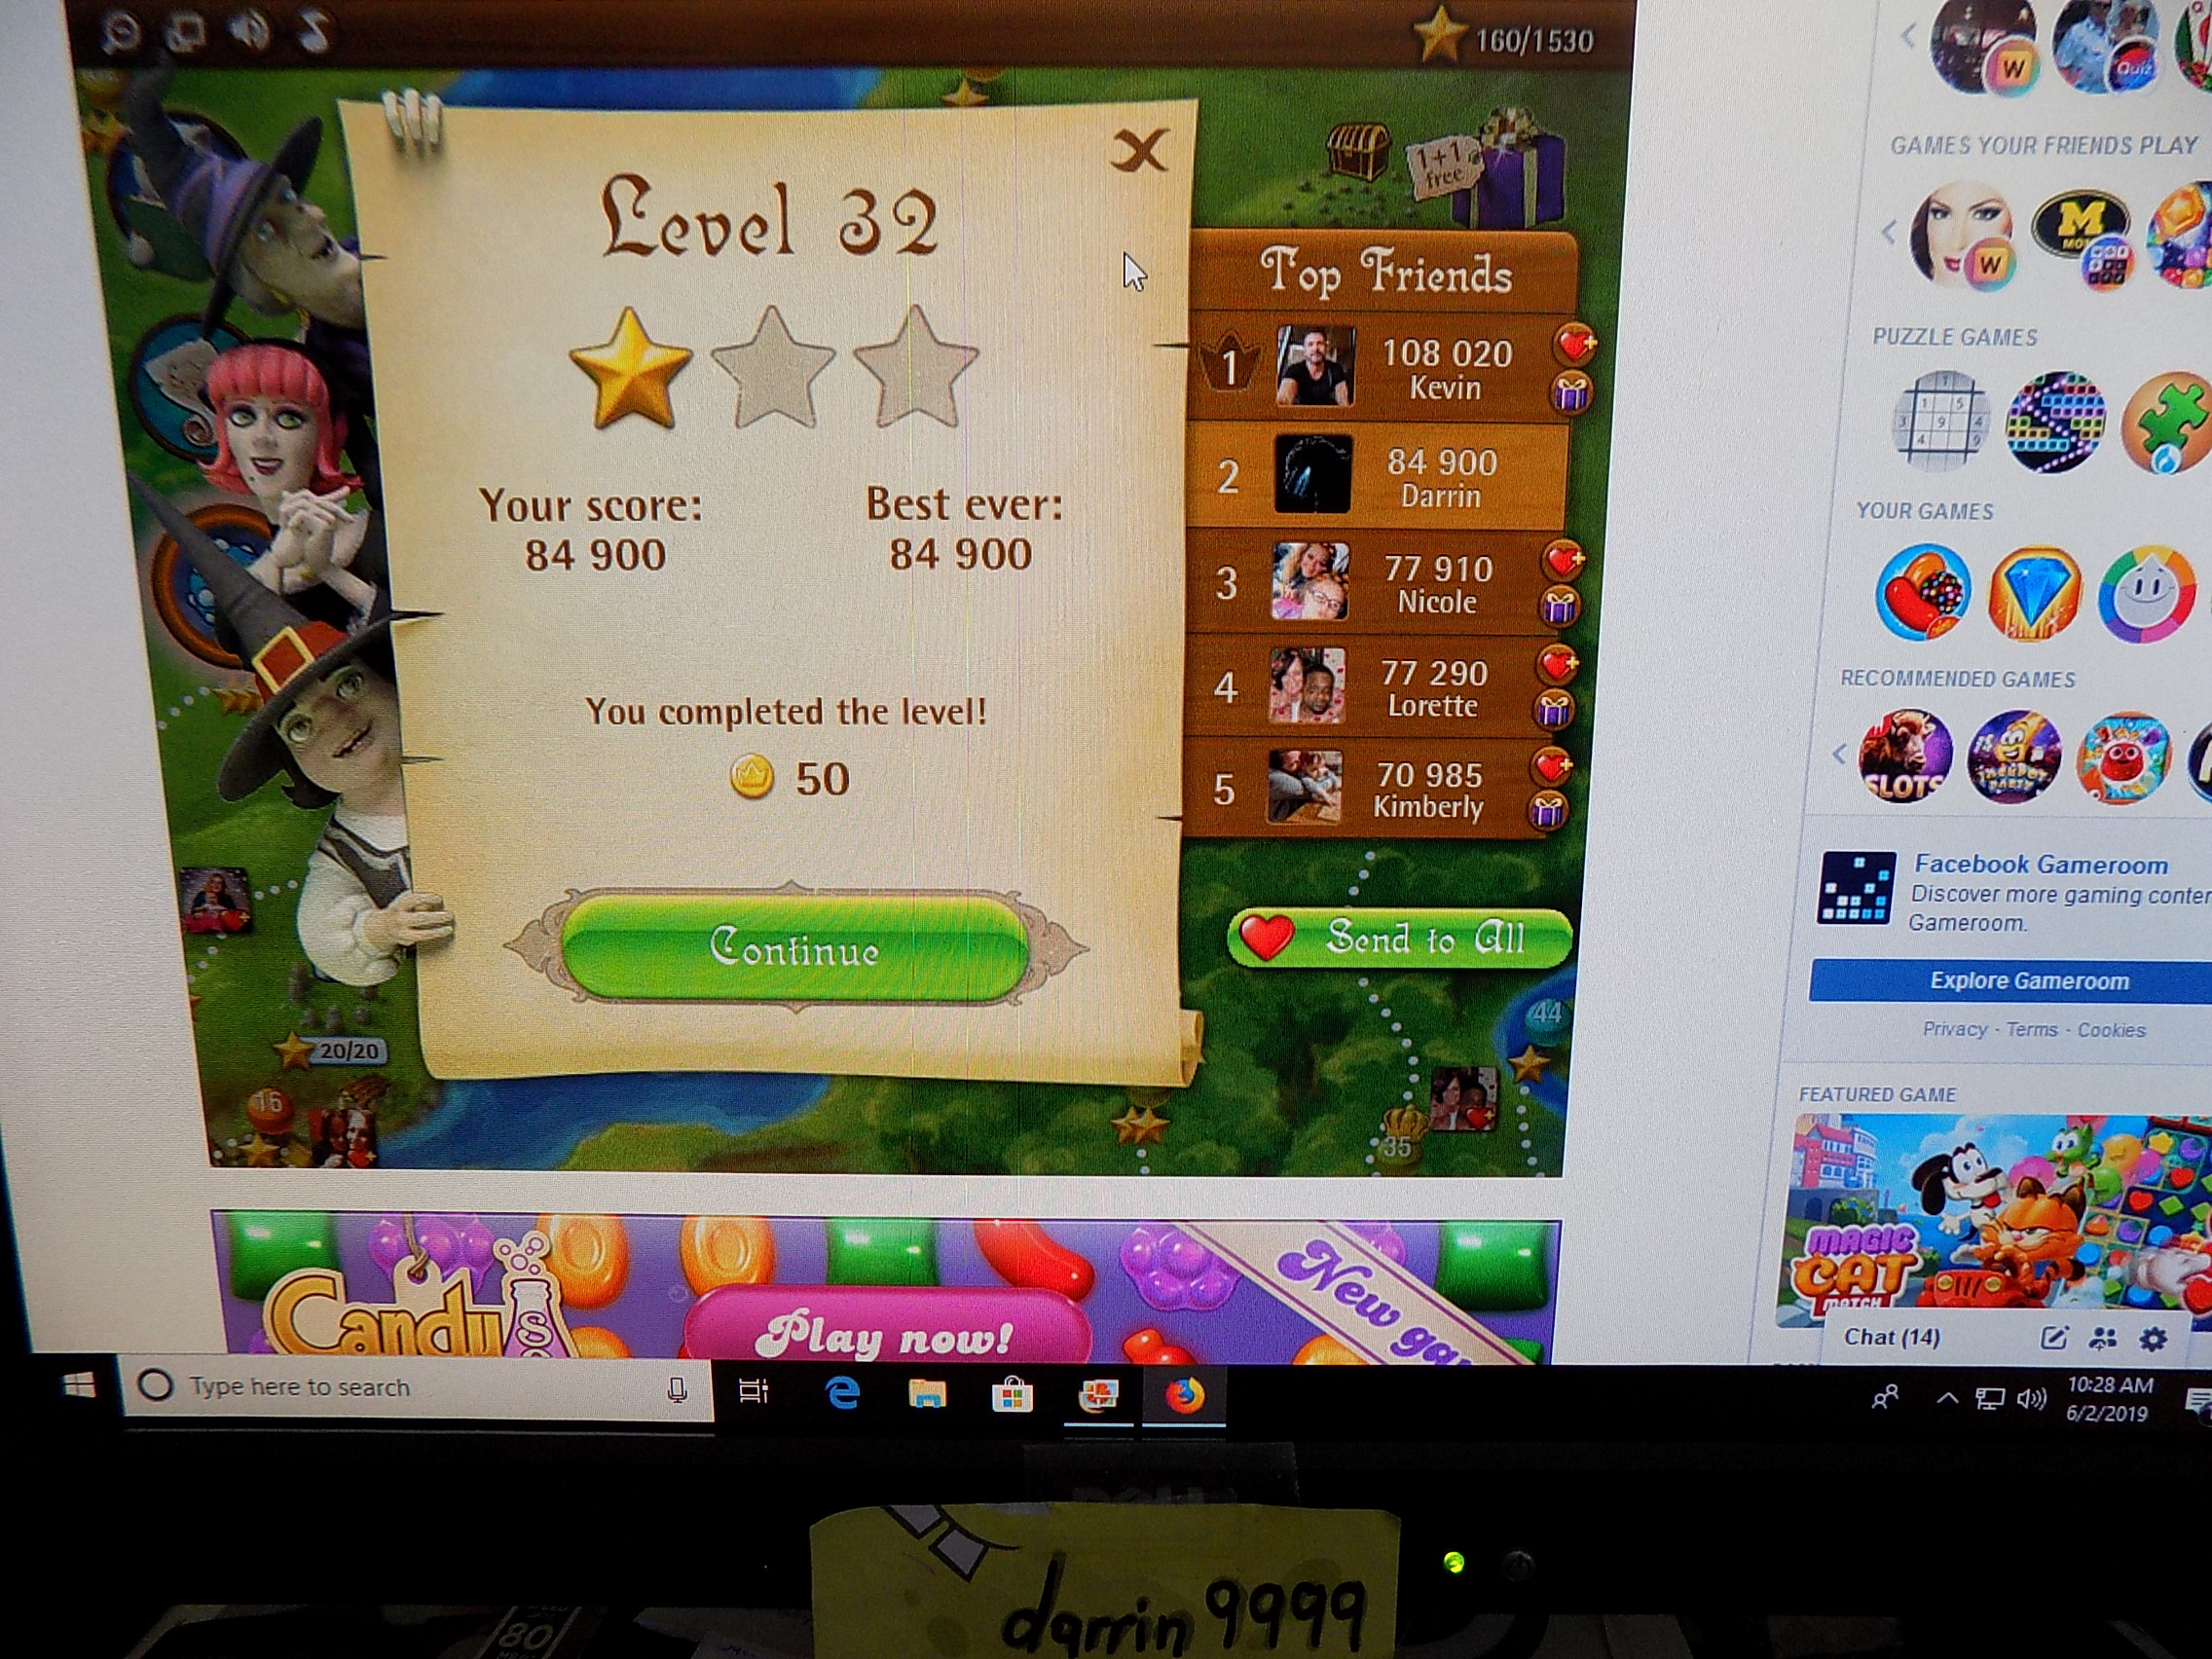 darrin9999: Bubble Witch Saga: Level 32 (Web) 84,900 points on 2019-06-02 09:40:25